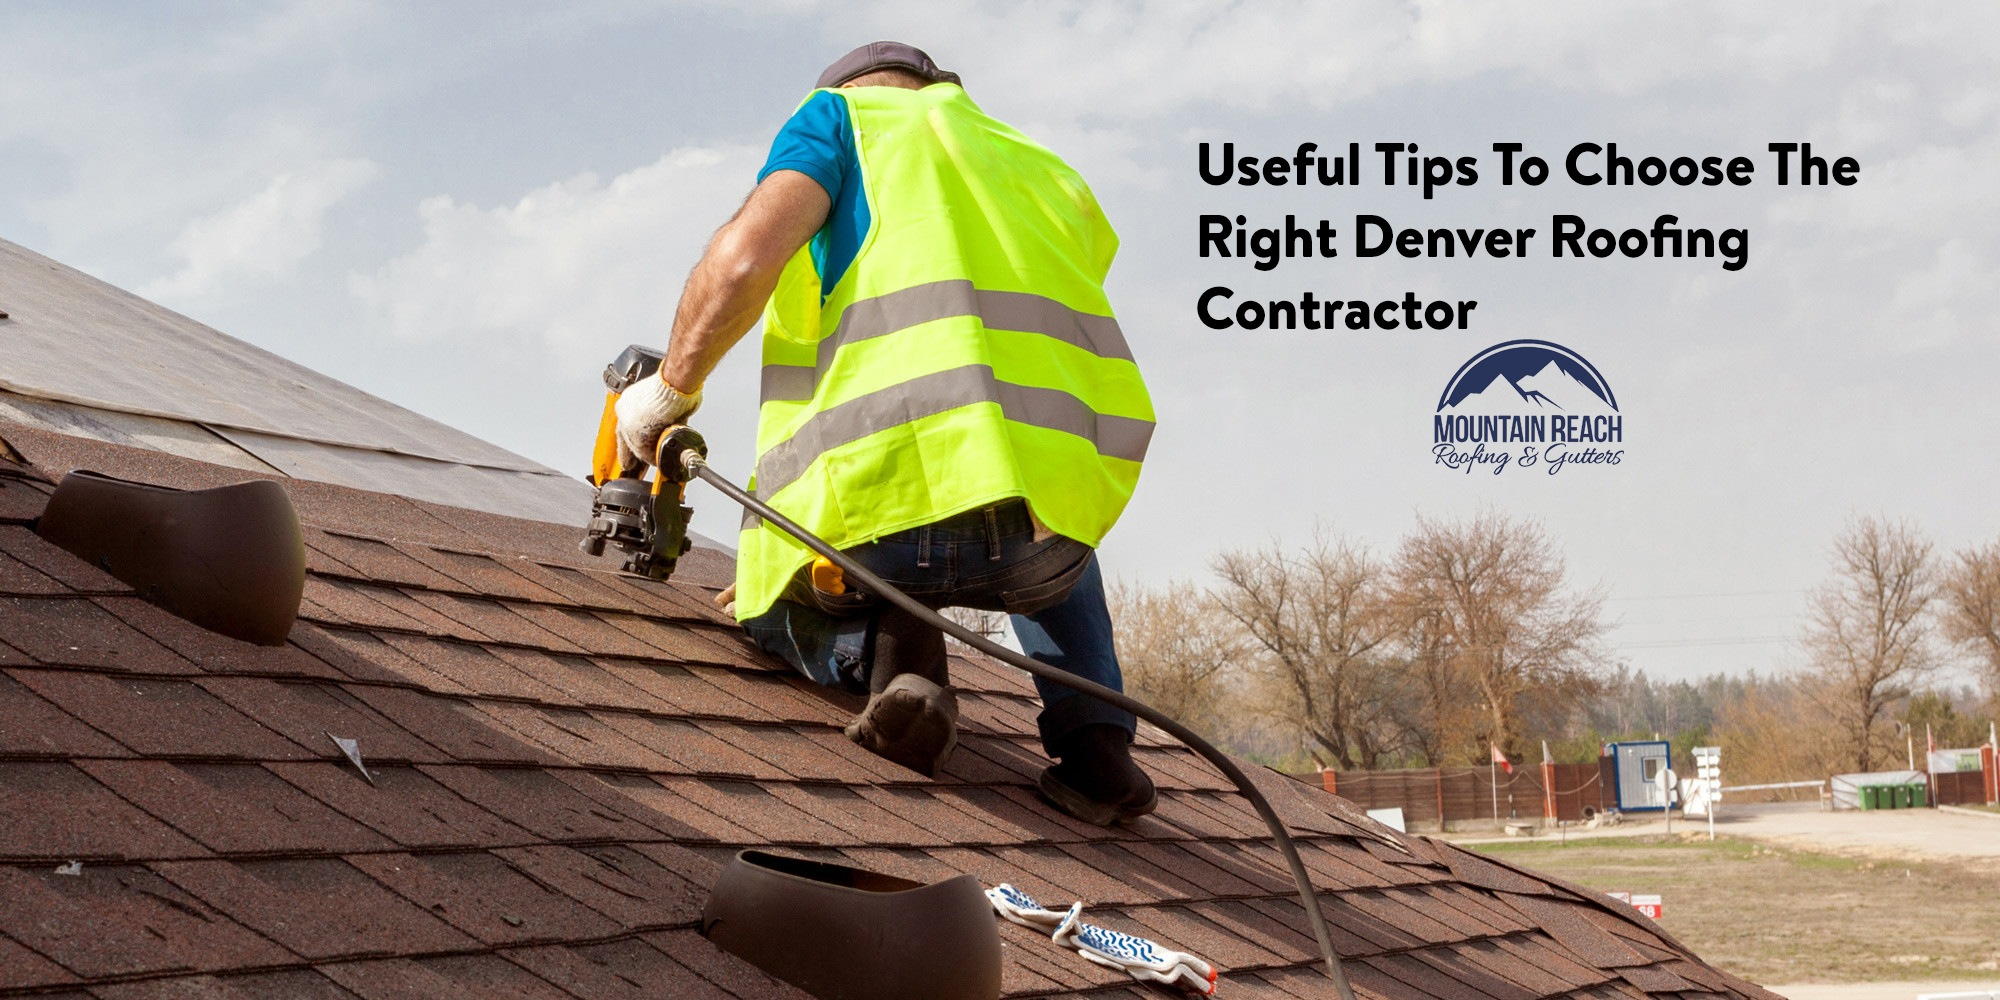 Best Denver Roofing Contractor